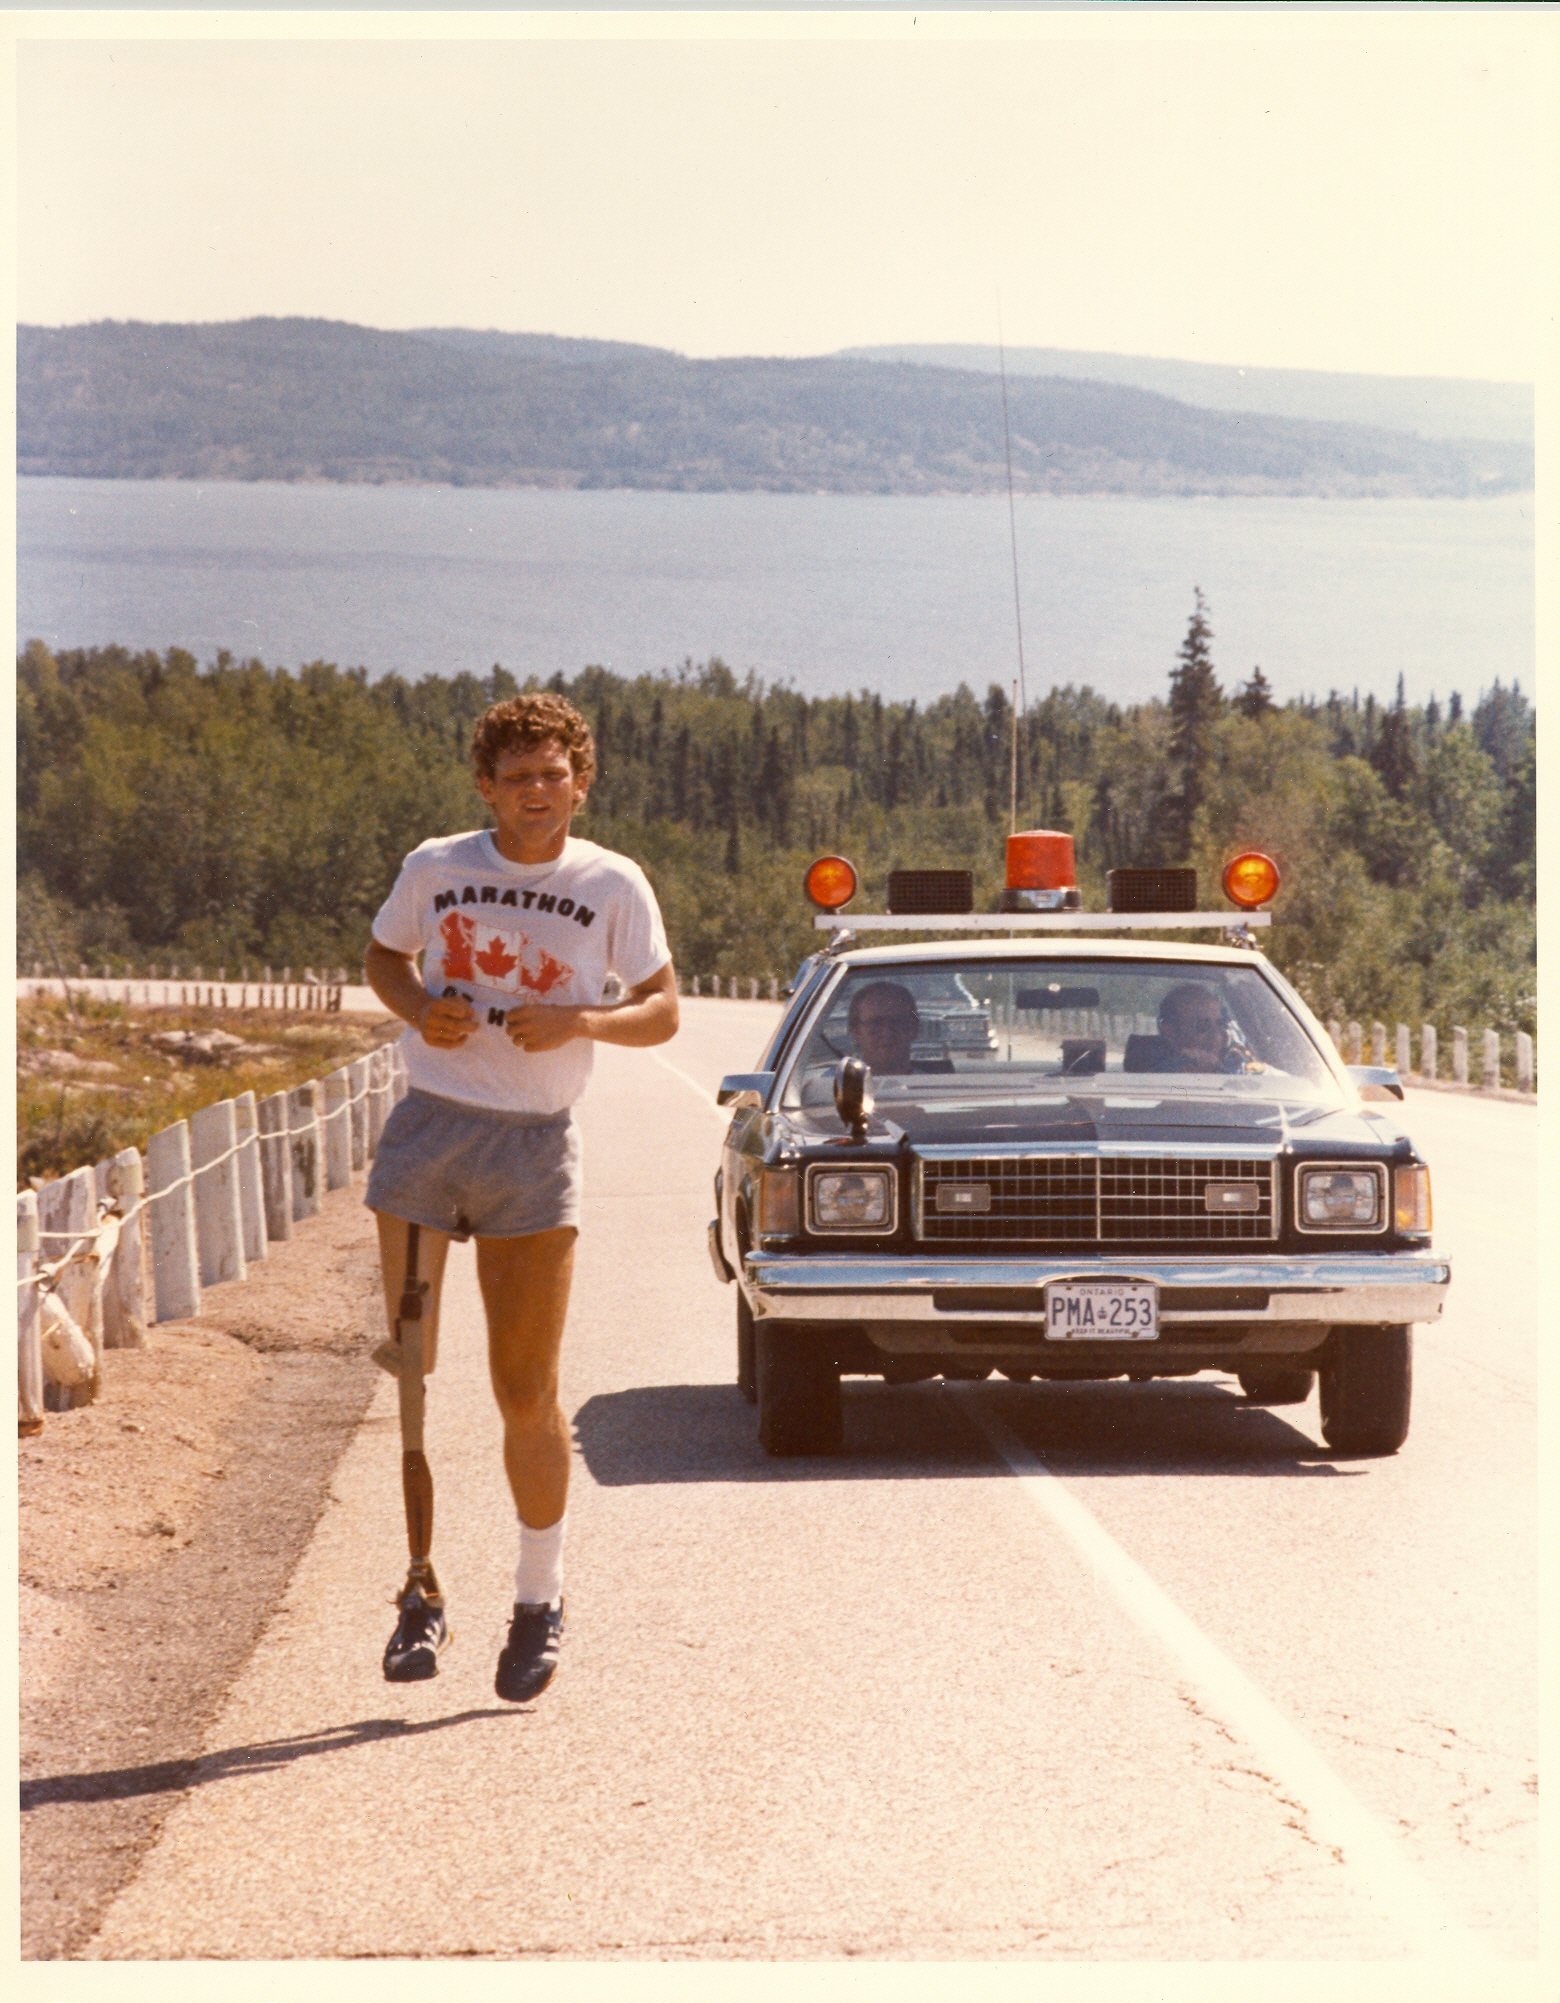 Terry Fox on the Road